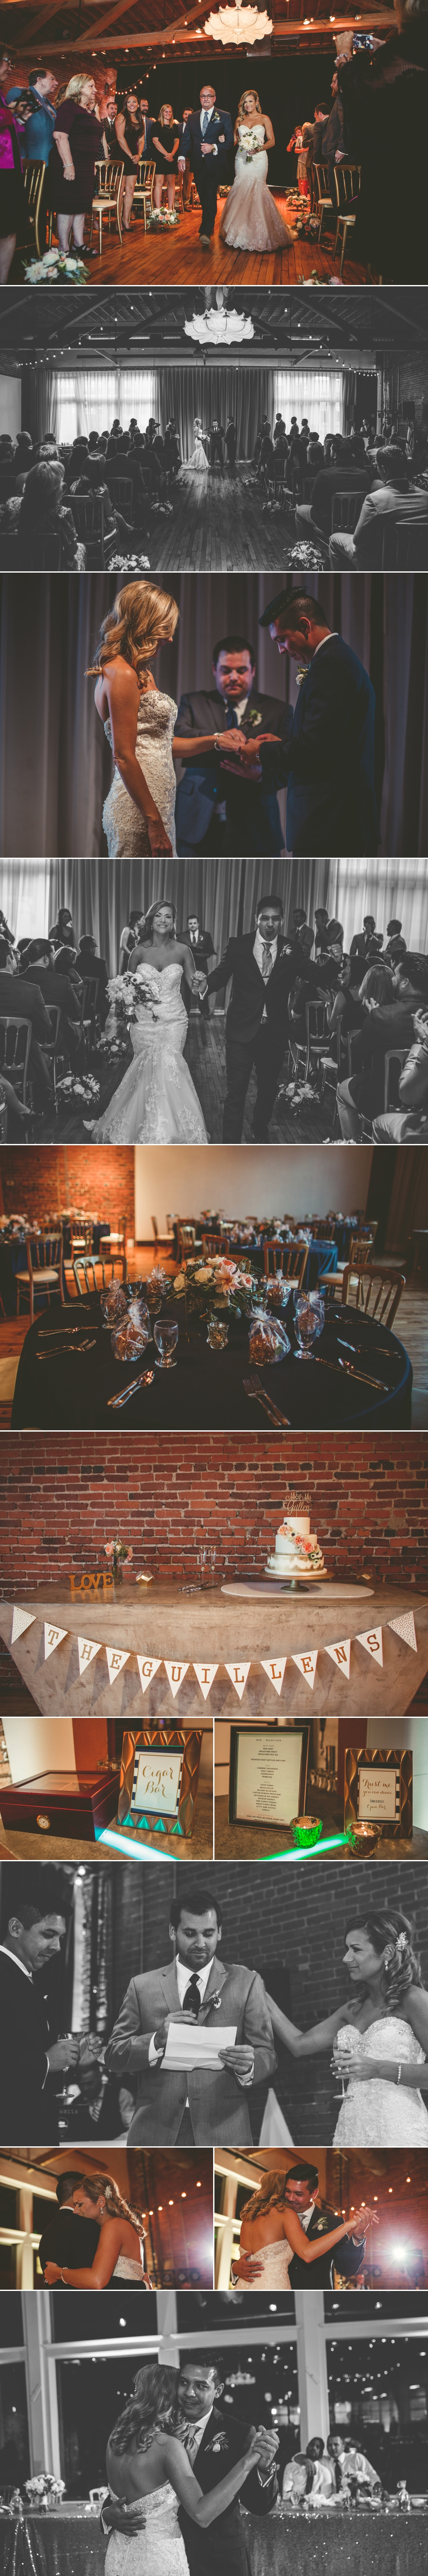 jason_domingues_photography_best_kansas_city_wedding_photographer_kc_weddings_berg0003